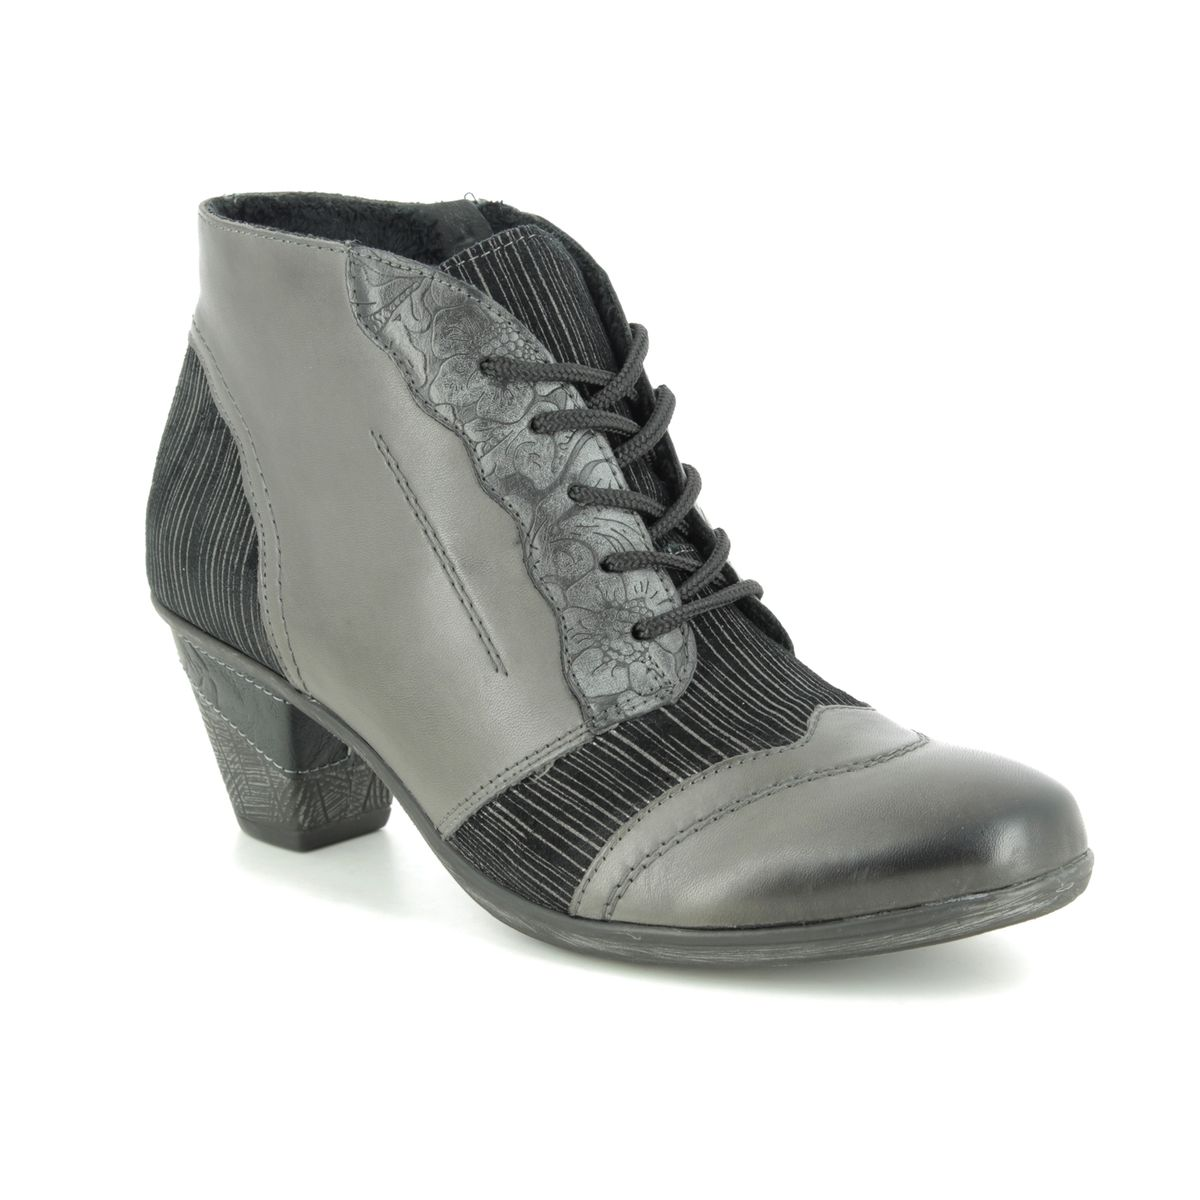 D8789-40 Black Multi Leather Lace Up Boots